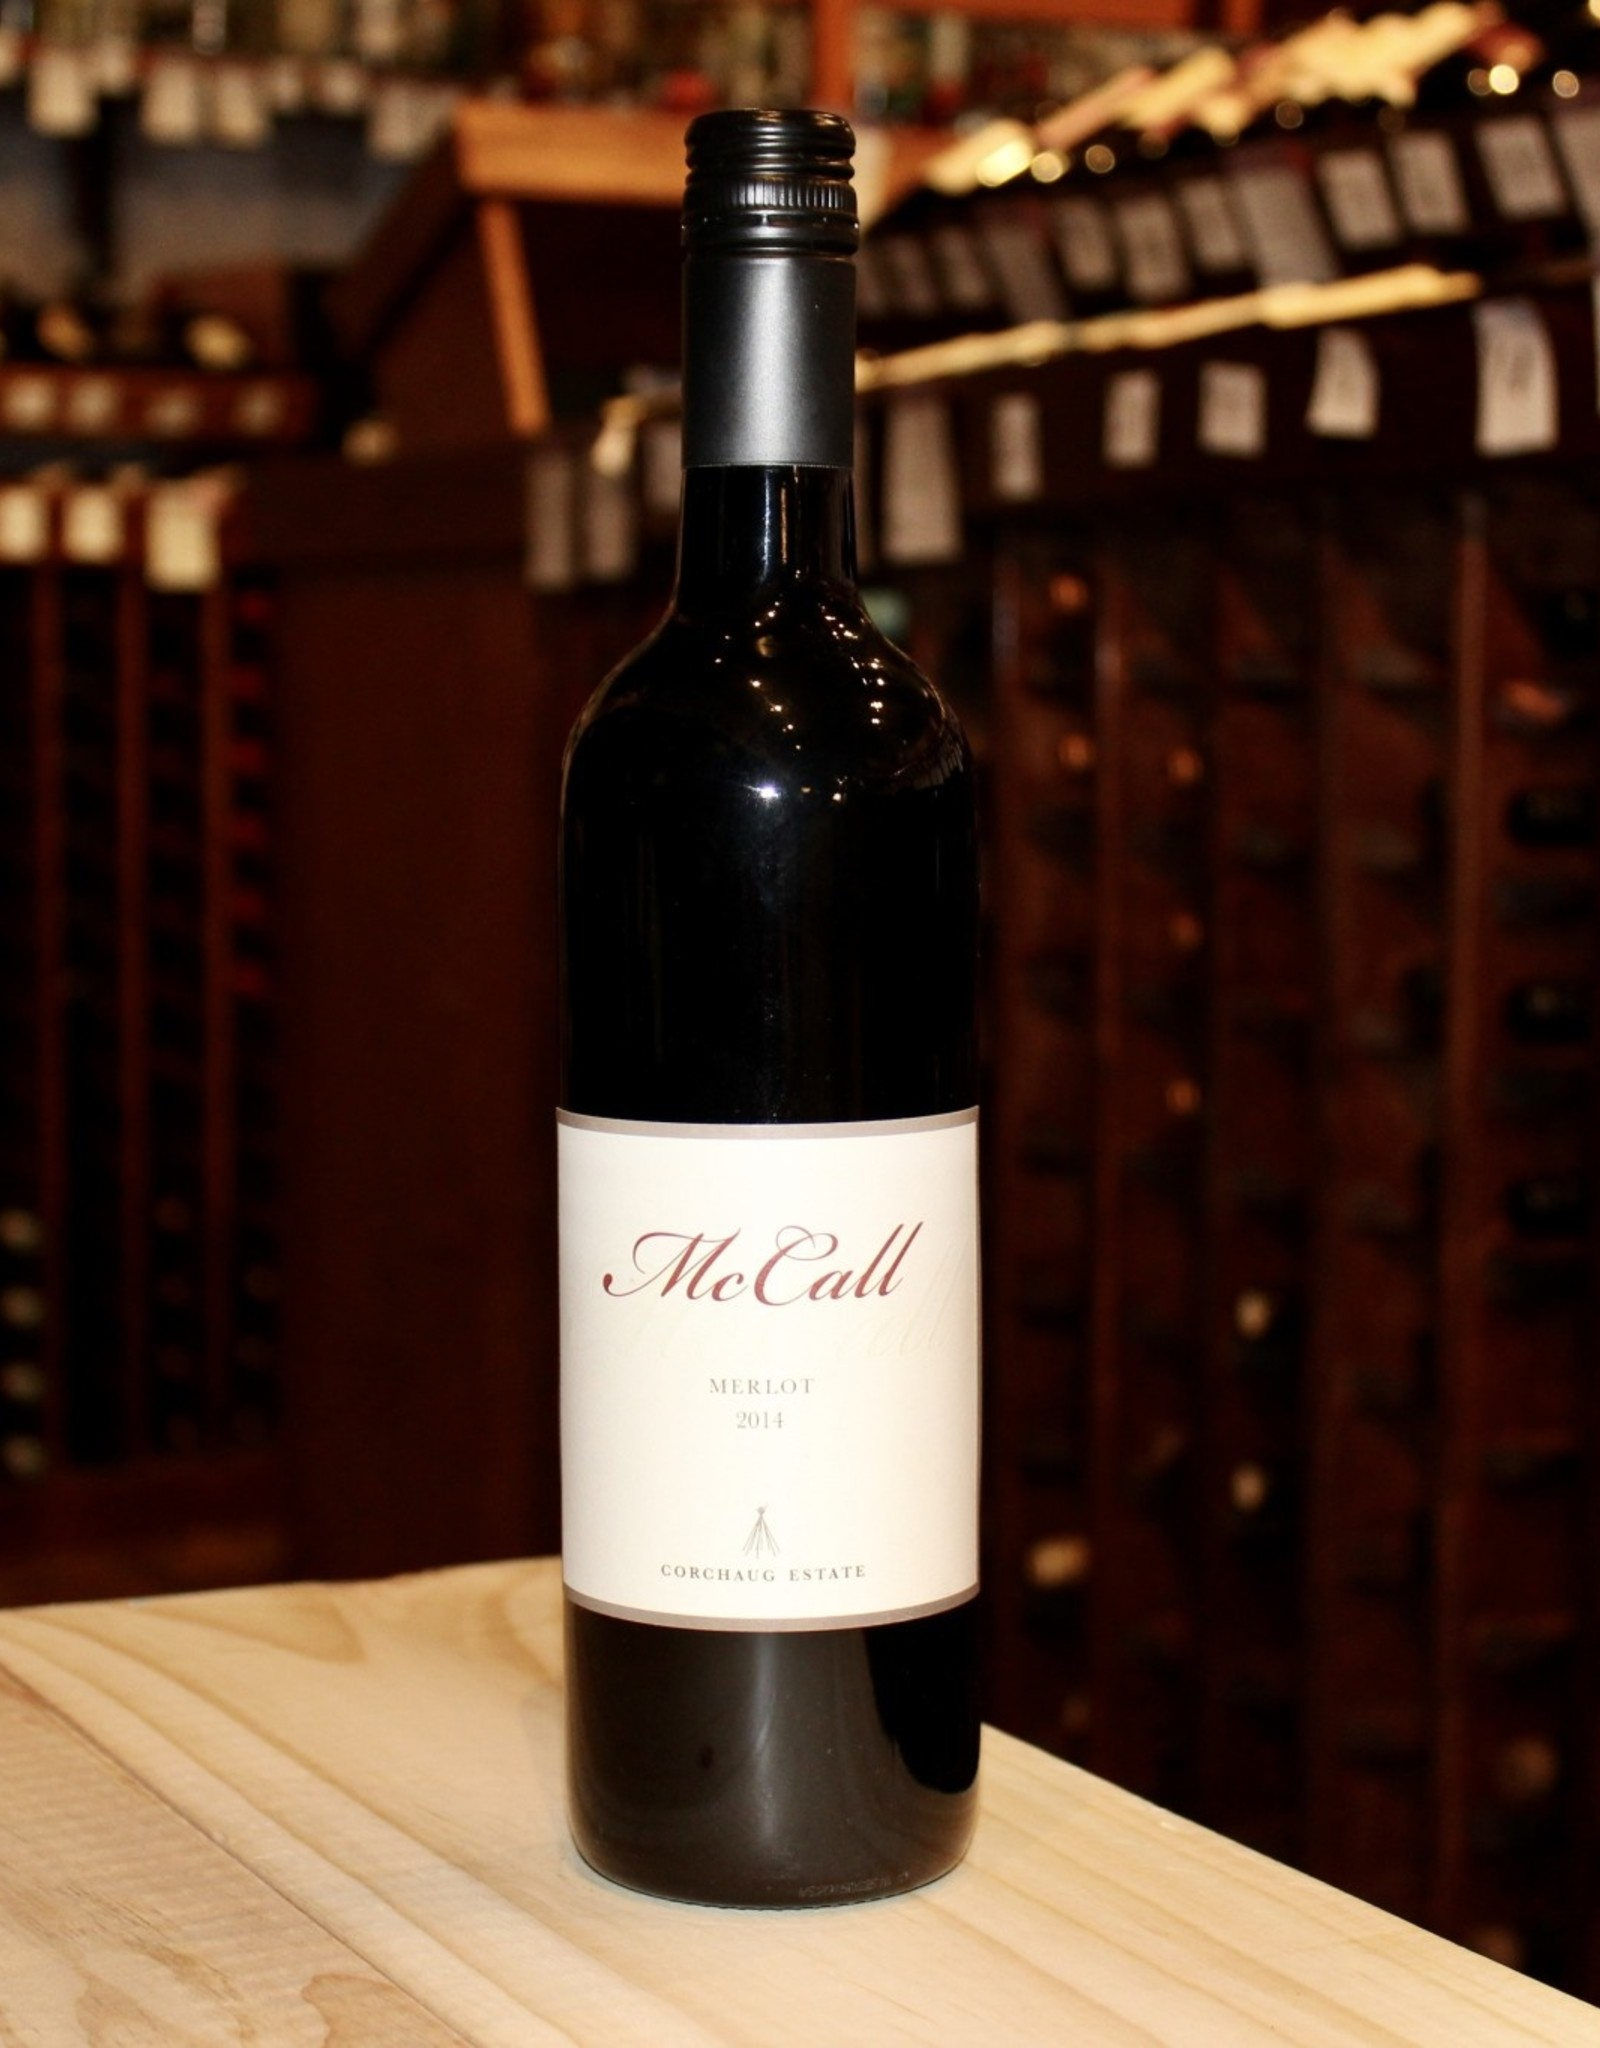 Wine 2014 McCall Corchaug Estate Merlot - North Fork of Long Island, NY (750ml)